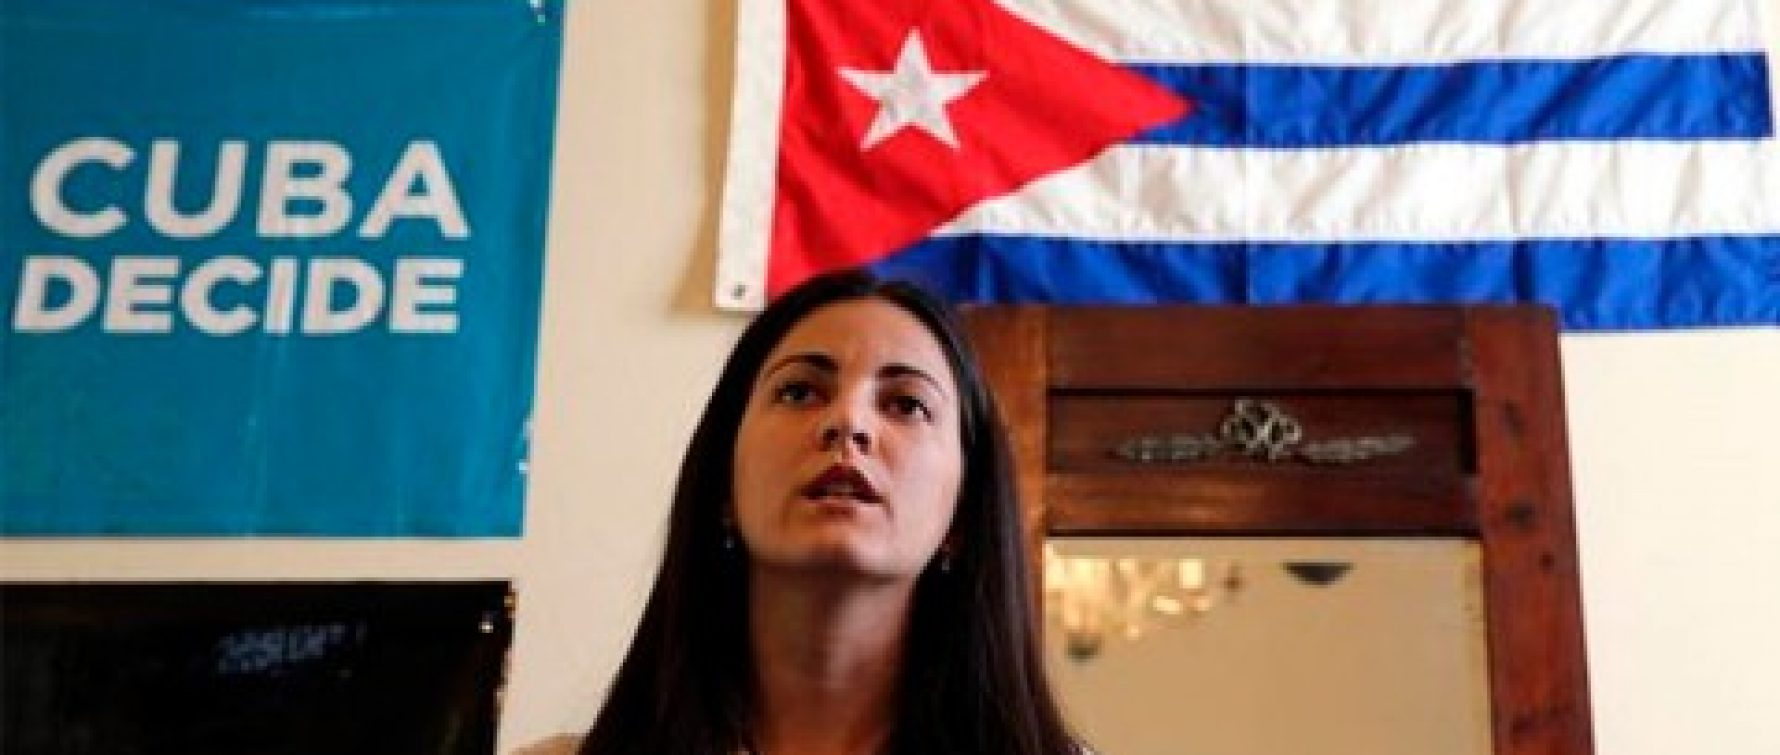 The IDC-CDI condemns acts violating human rights in Cuba